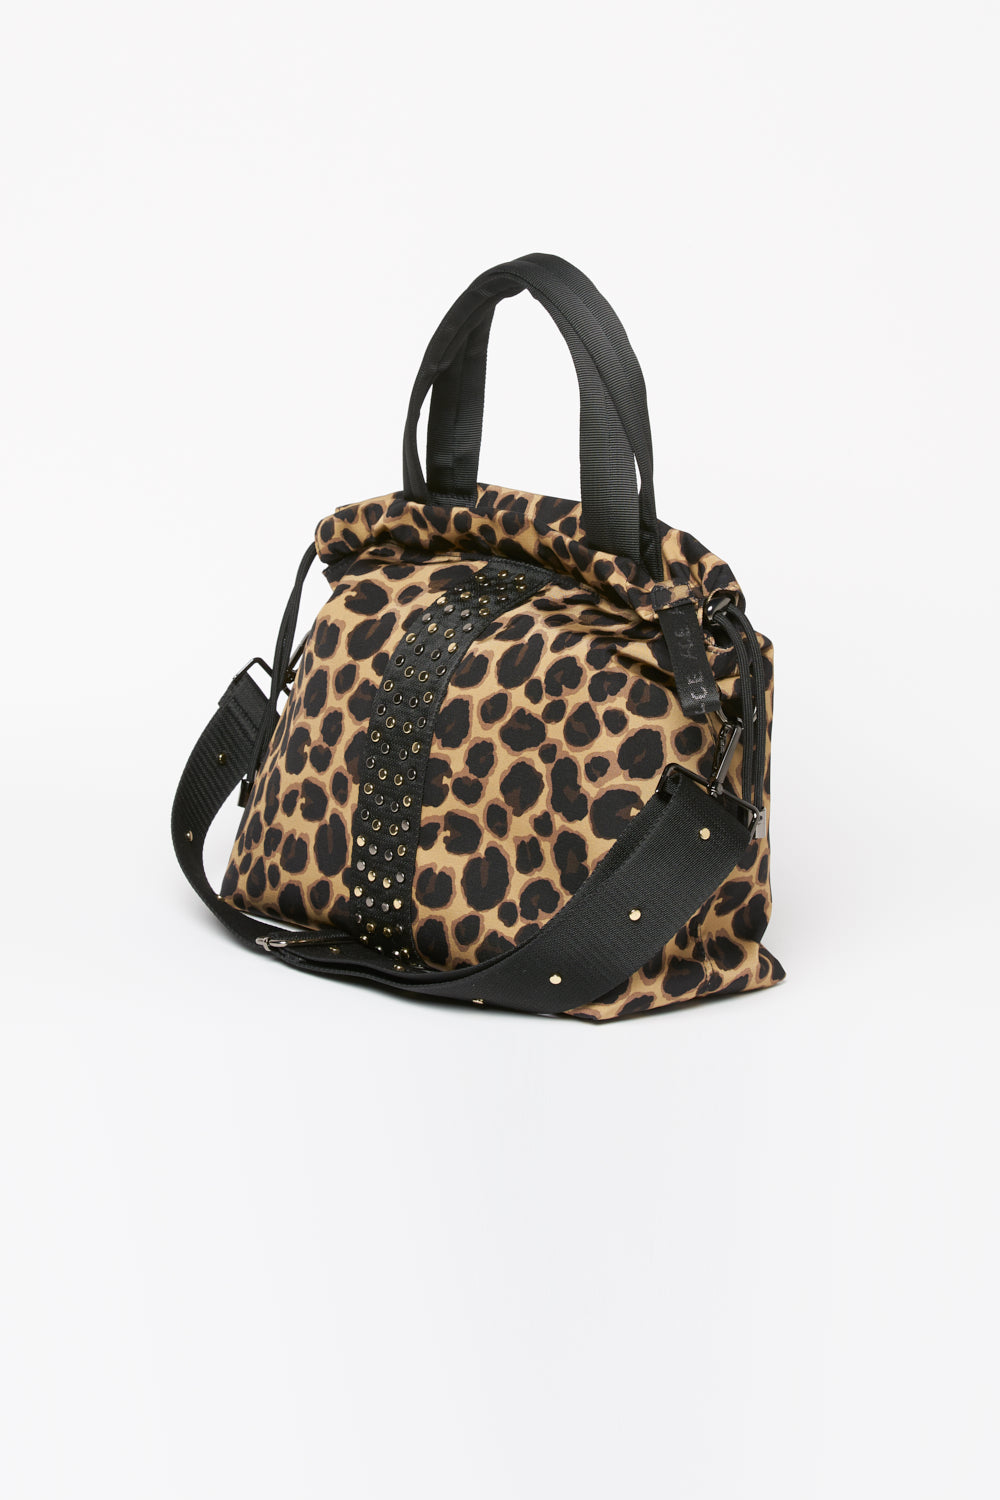 ACE Urban Tote Bag Leopard side view